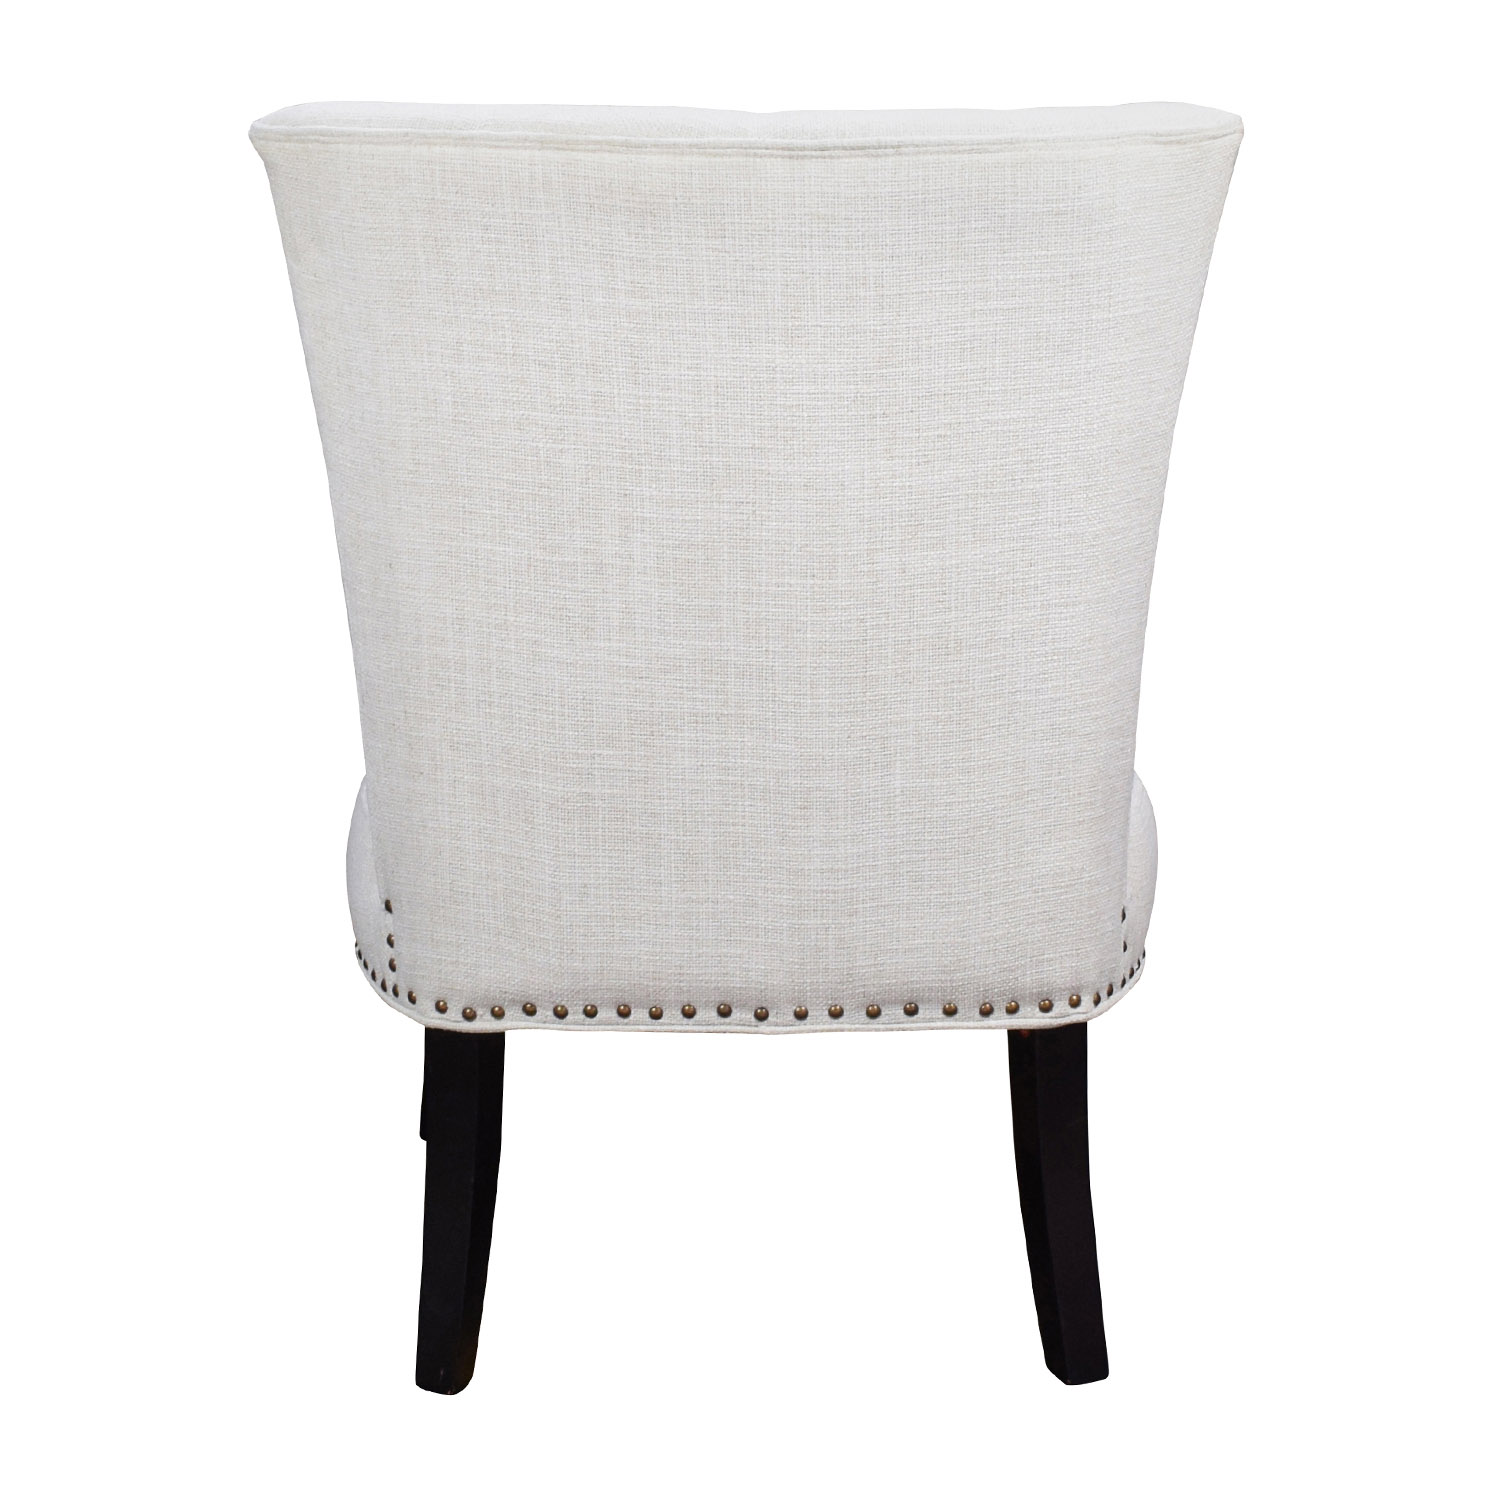 White Tufted Accent Chair 66 Off Unkown White Tufted Accent Chair Chairs